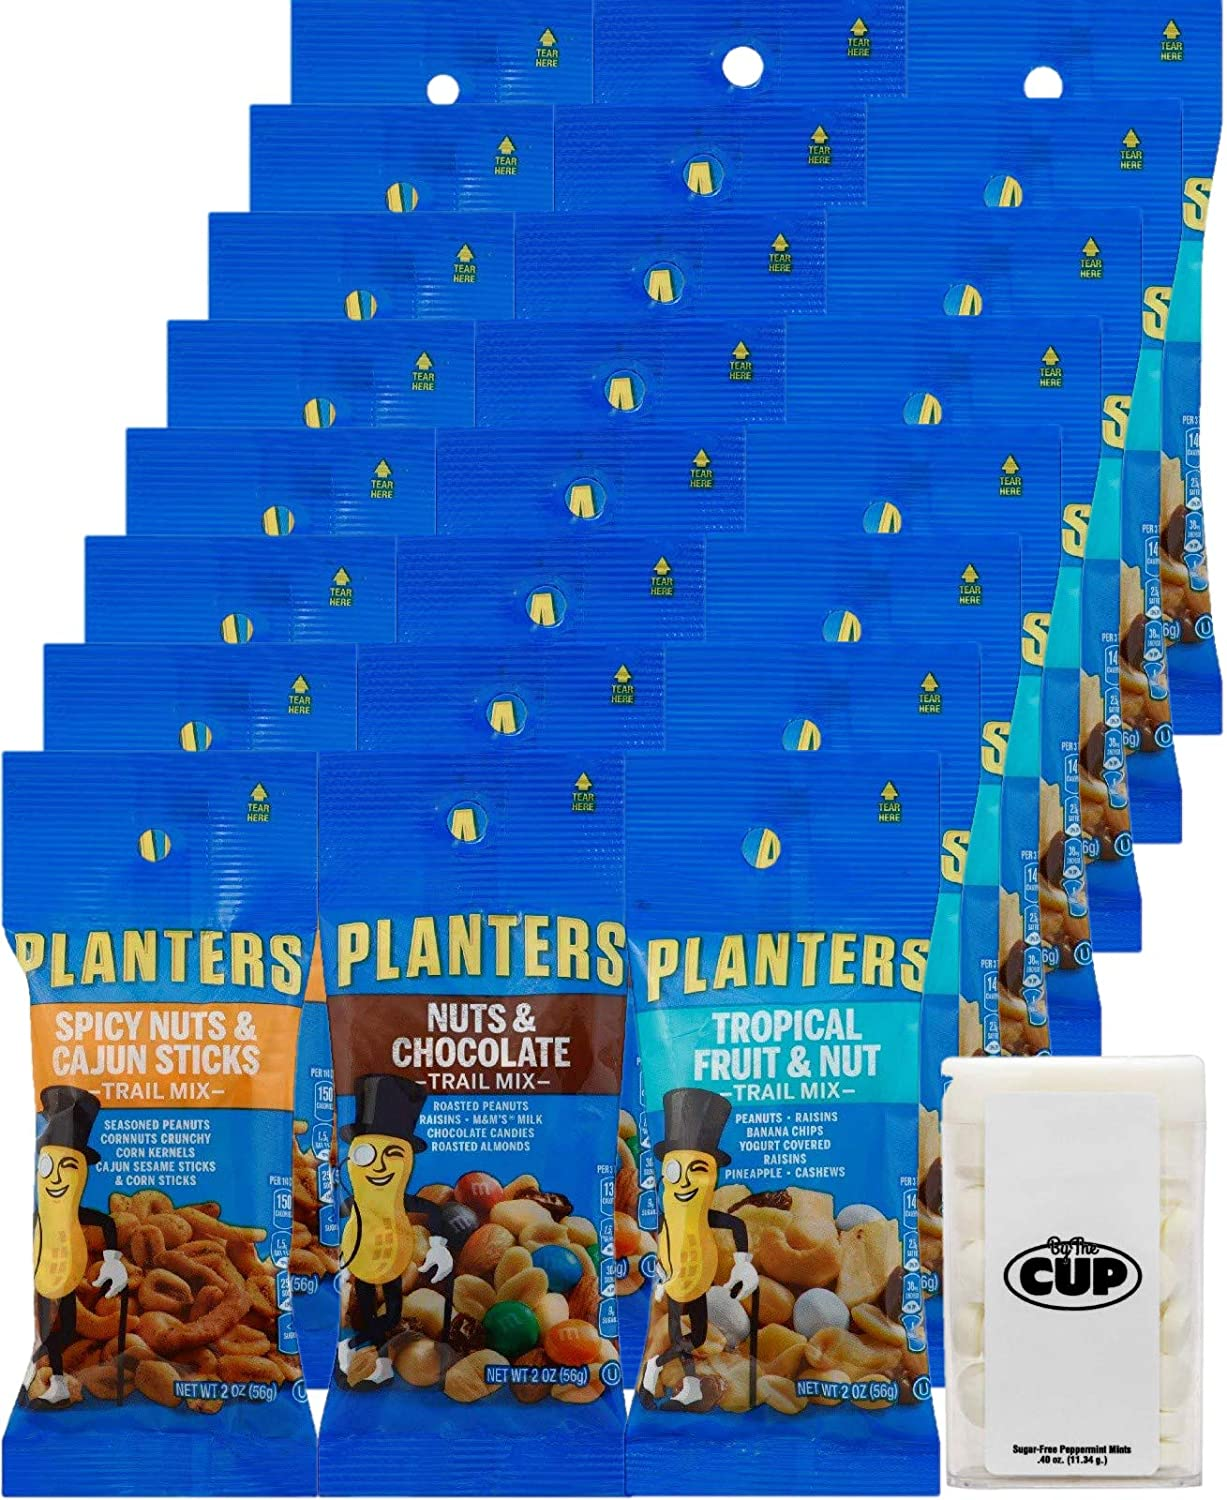 Planters Peanuts Trail Mix Individual Packs Variety, 24 - 2 Ounce Bags, 8 of Each Cajun, Chocolate, and Tropical with By The Cup Mints